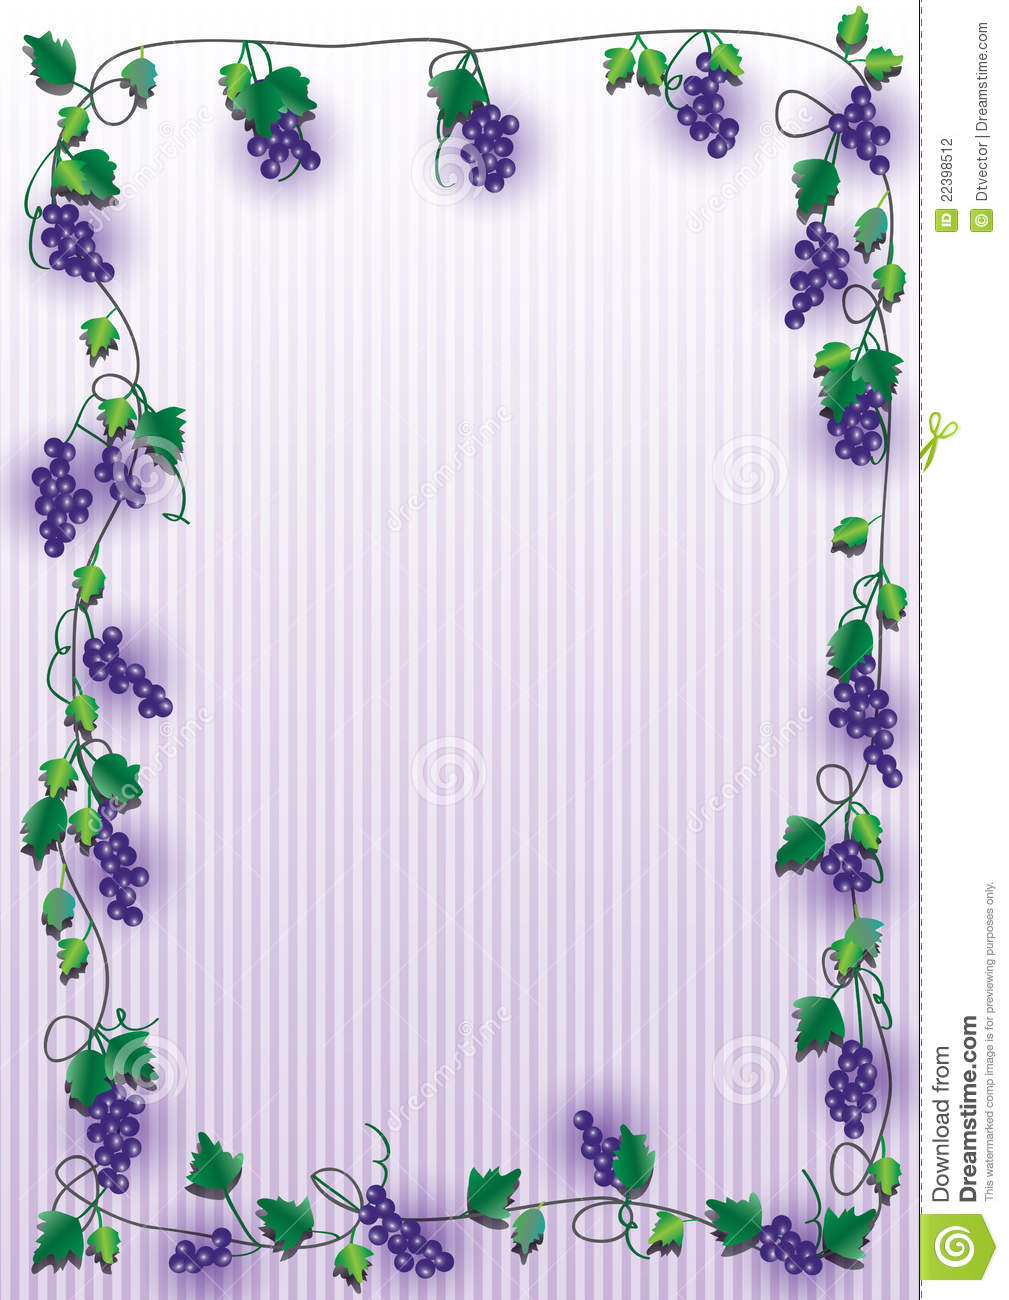 Teal Butterfly And Scrolls Hi together with Hd Shapes Vecor Free Download X further  additionally Stock Vector Abstract Gold And Purple Floral Frame Background likewise Elements Clipart Floral Decoration. on purple swirl border